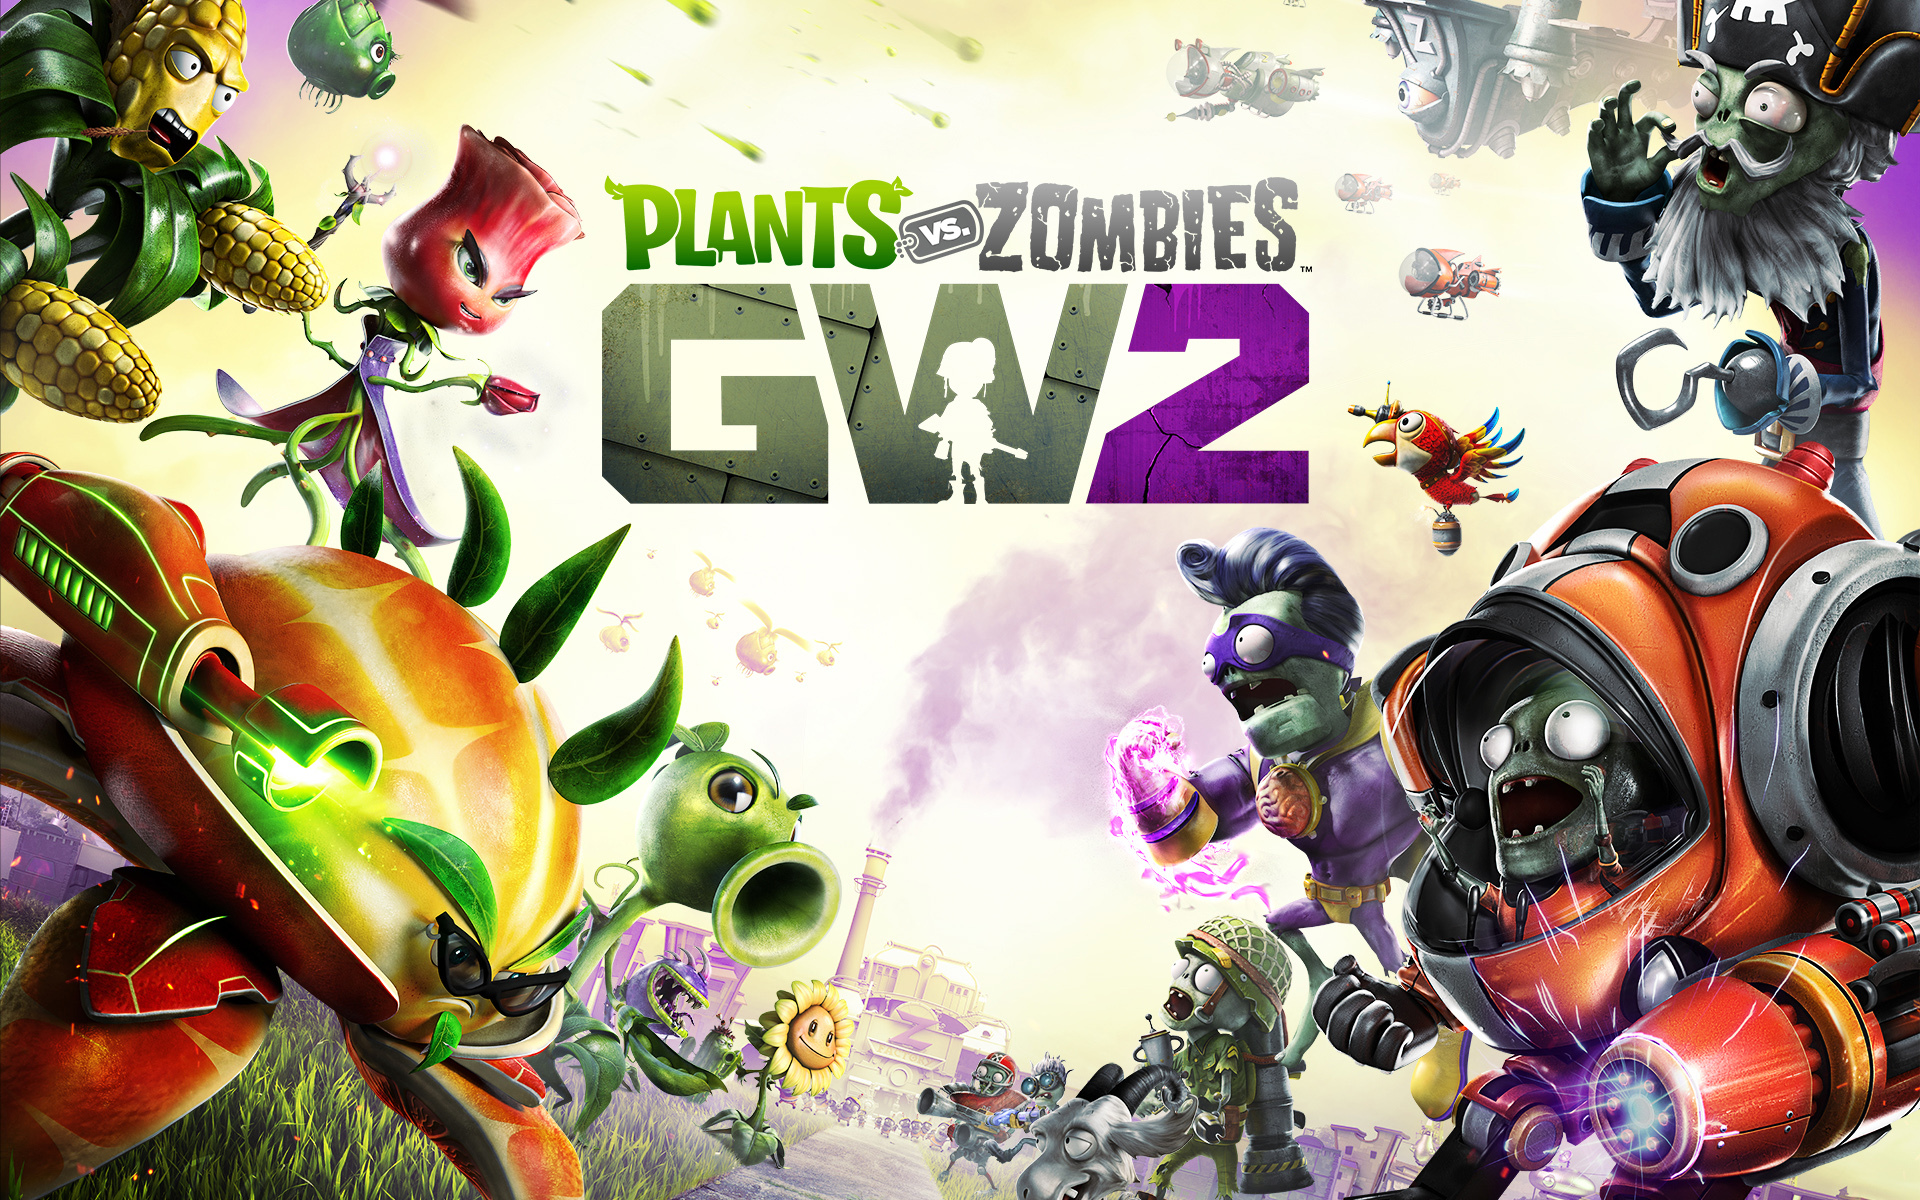 Fondos de pantalla de plants vs zombies garden warfare 1 y - Free plants vs zombies garden warfare ...